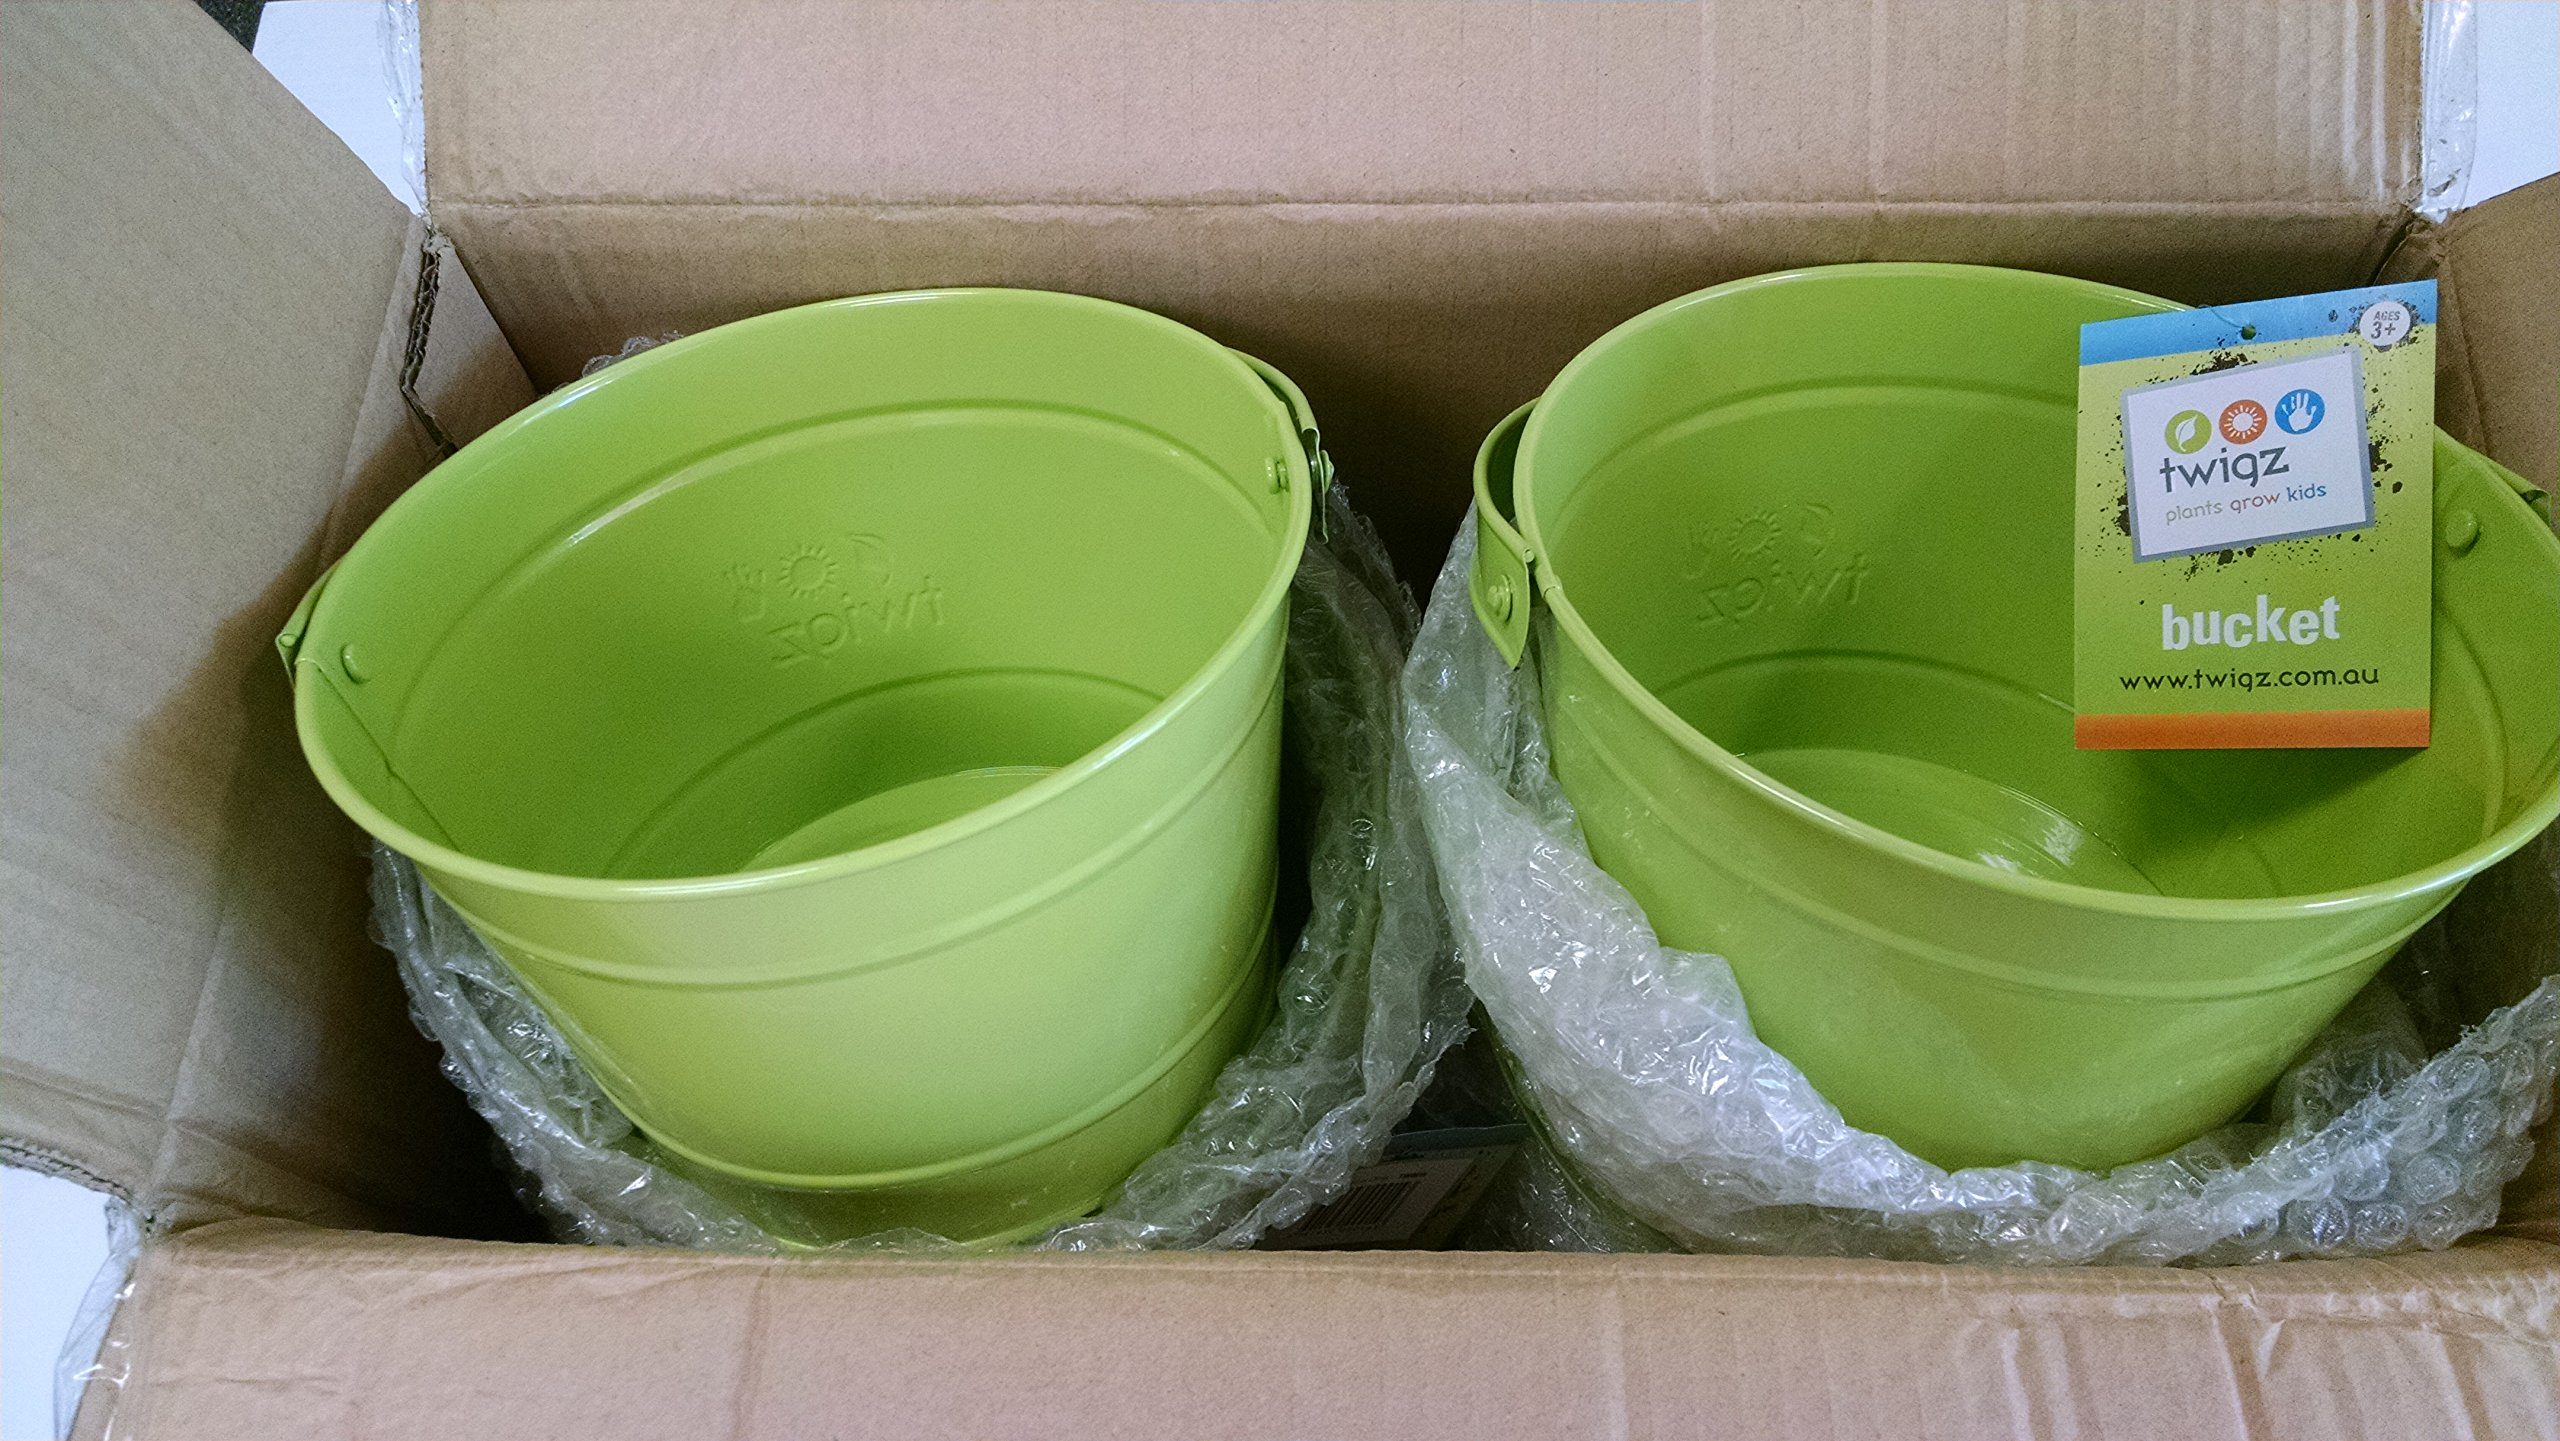 Twigz Kids Gardening Bucket - Steel - Green - Multipack of 24 Buckets - Value Pack - Big Savings for Childrens Gardening Groups and Classes and Workshops, Preschools, Kindergardens and Schools